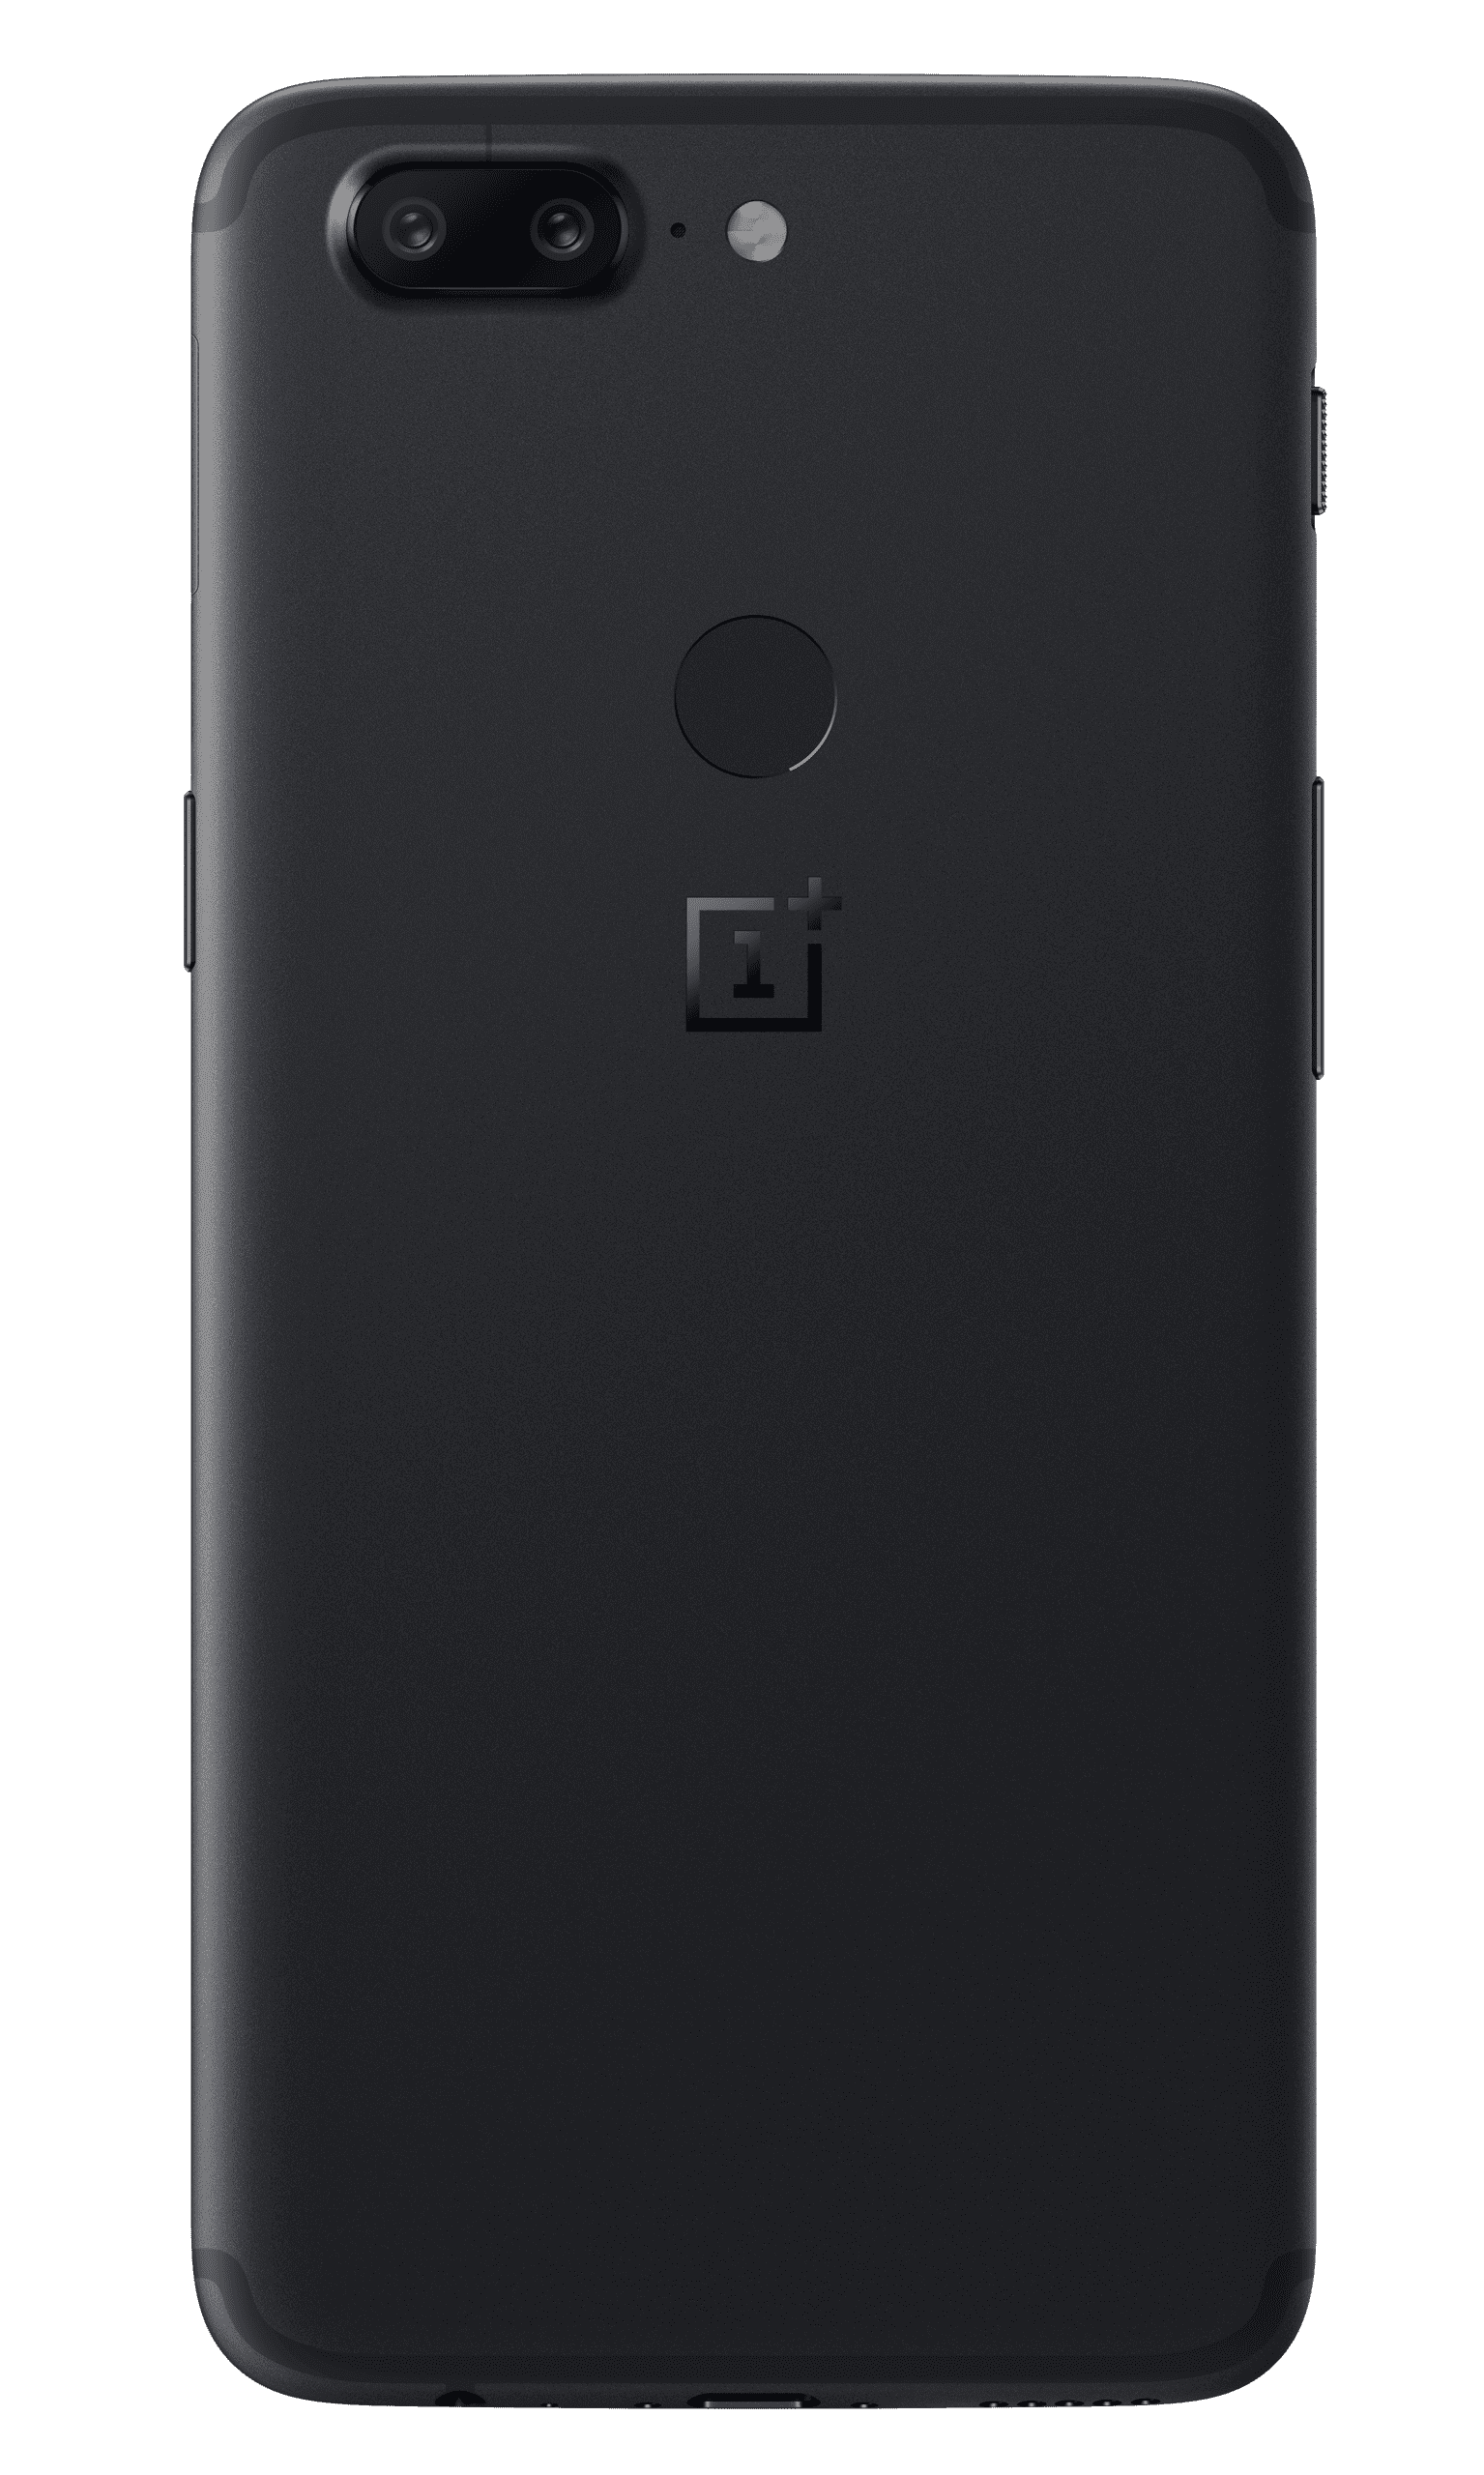 HOW TO: Enter Recovery Mode on OnePlus 5T - Tutorial / Guide